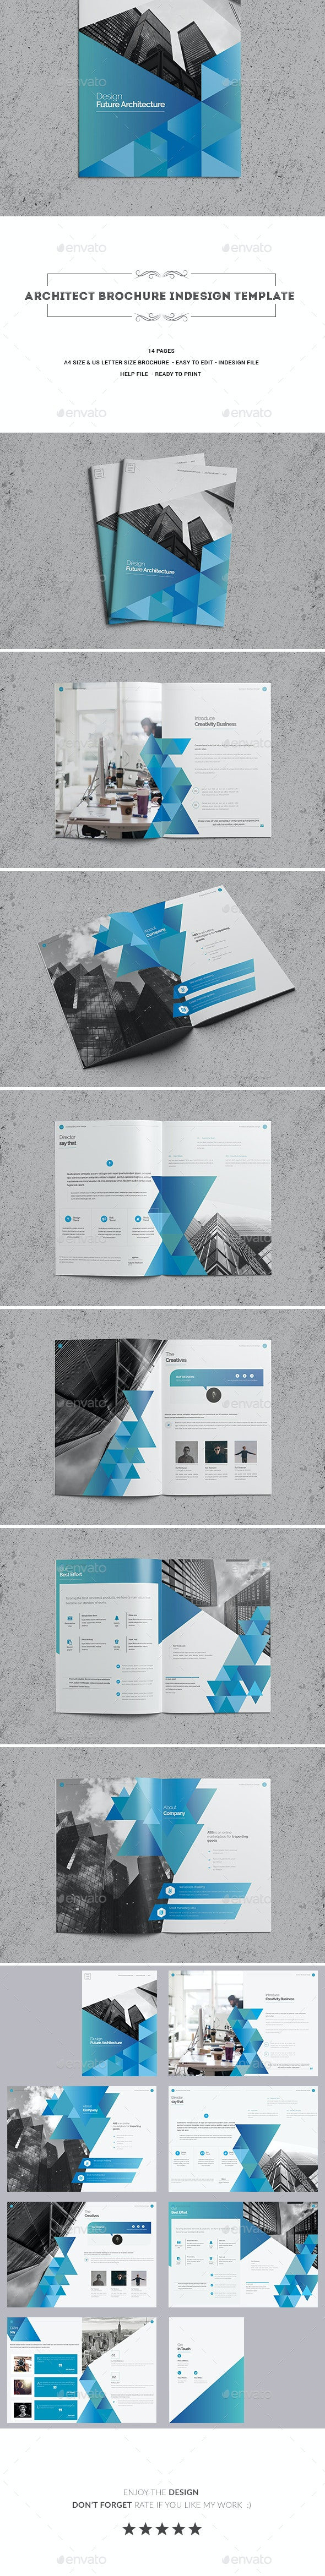 Architect Brochure Indesign Template - Brochures Print Templates